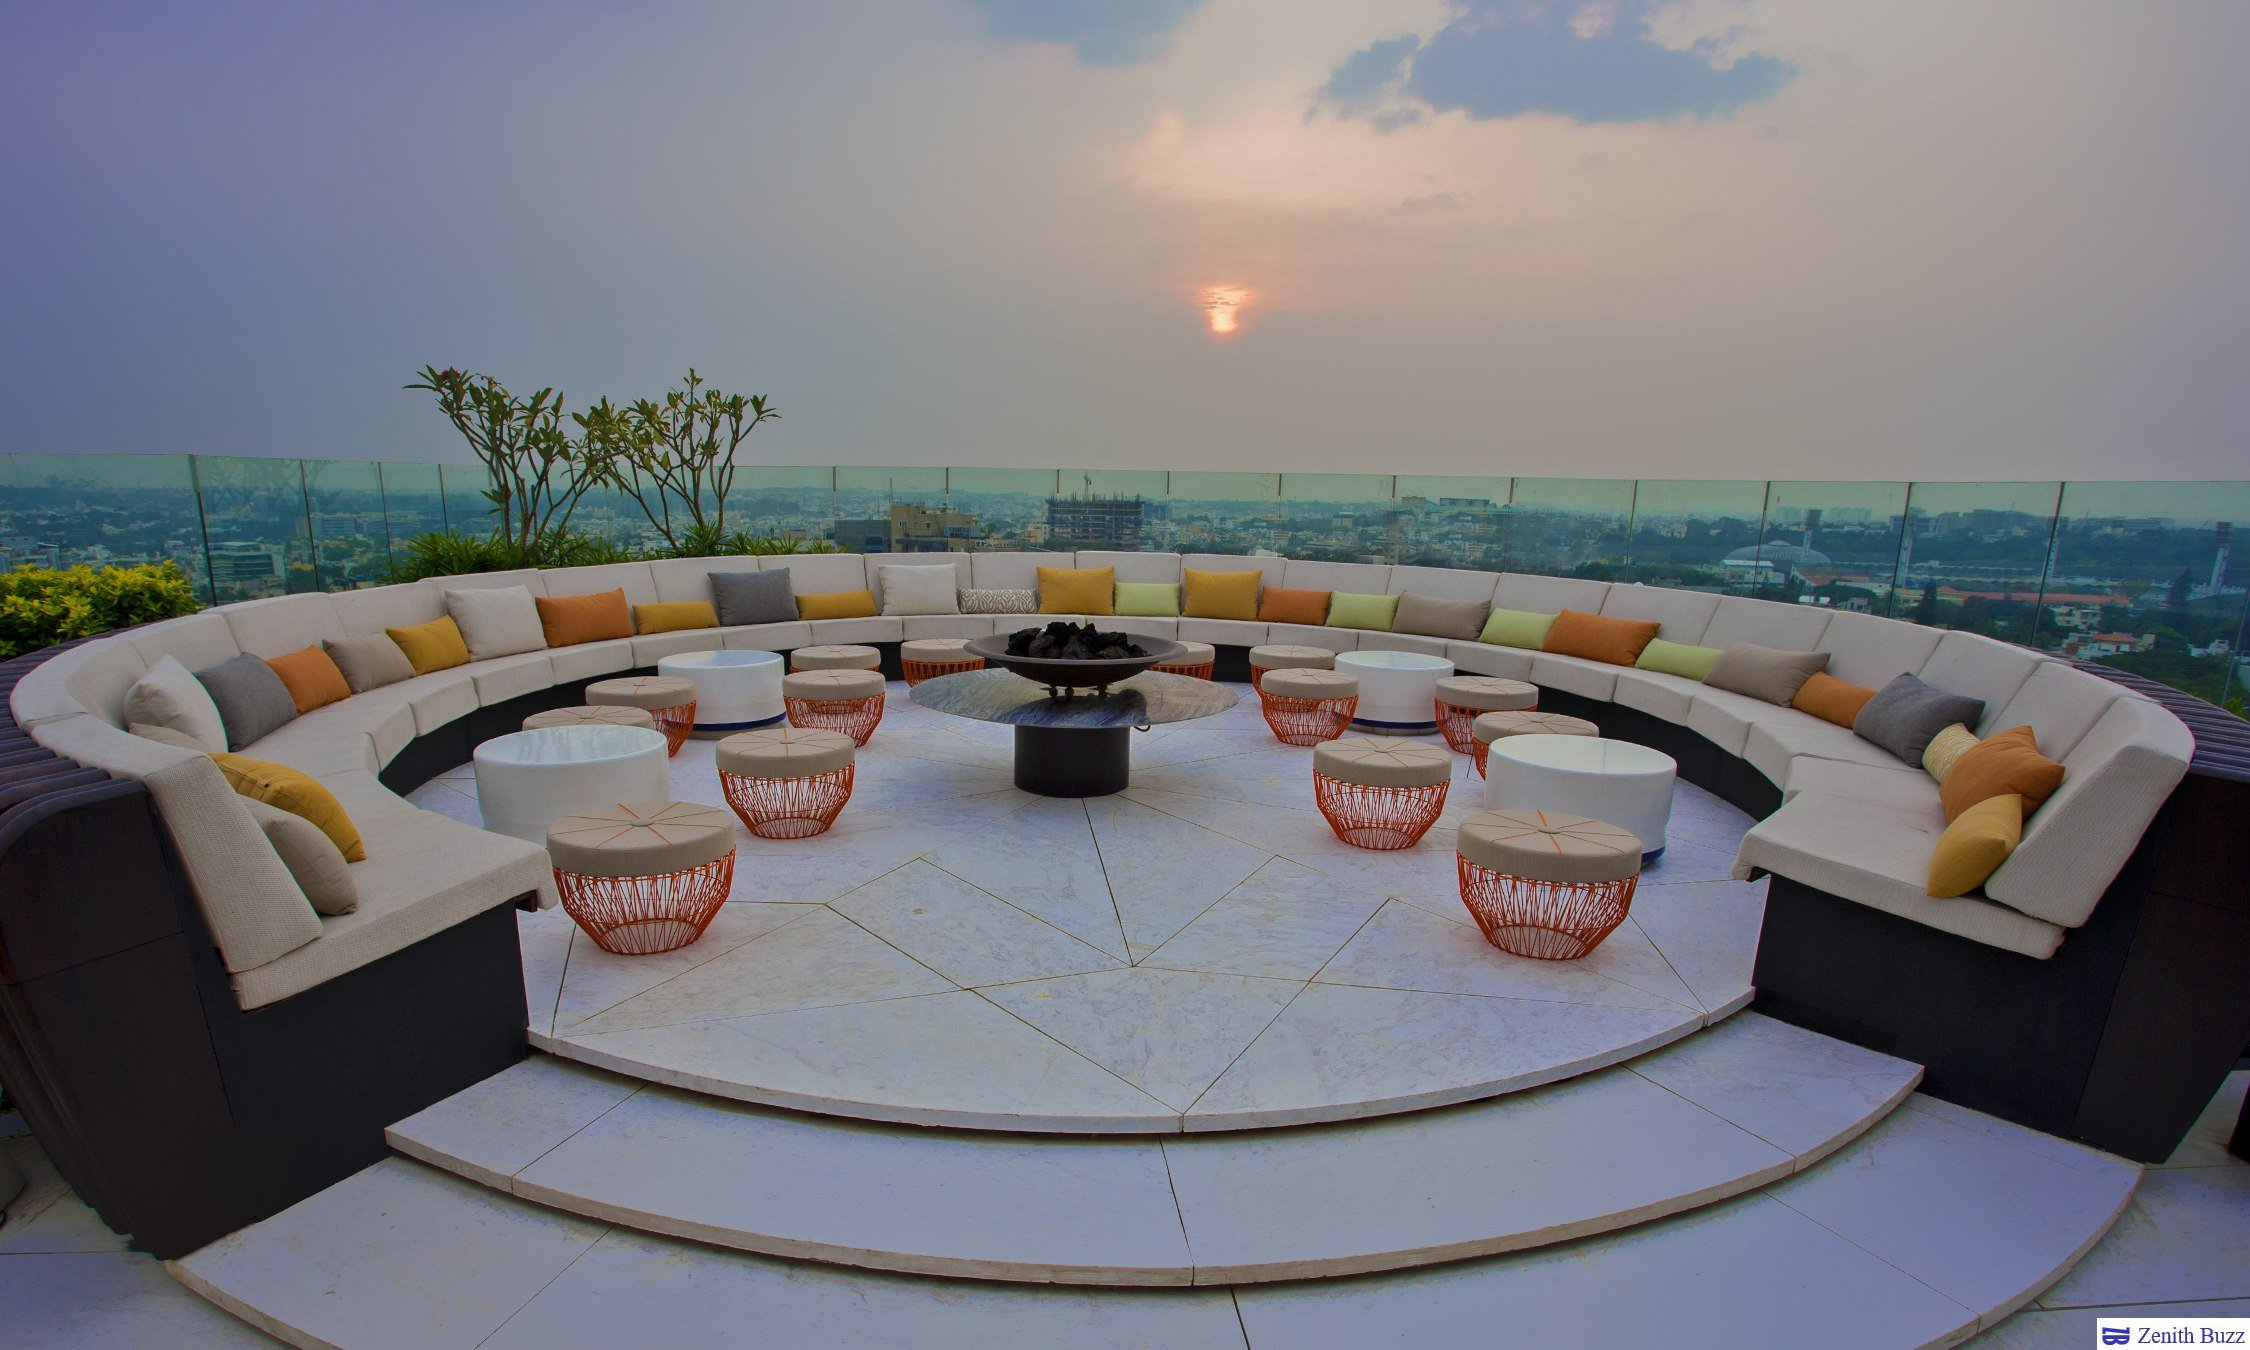 Splendid place in Bangalore for couple